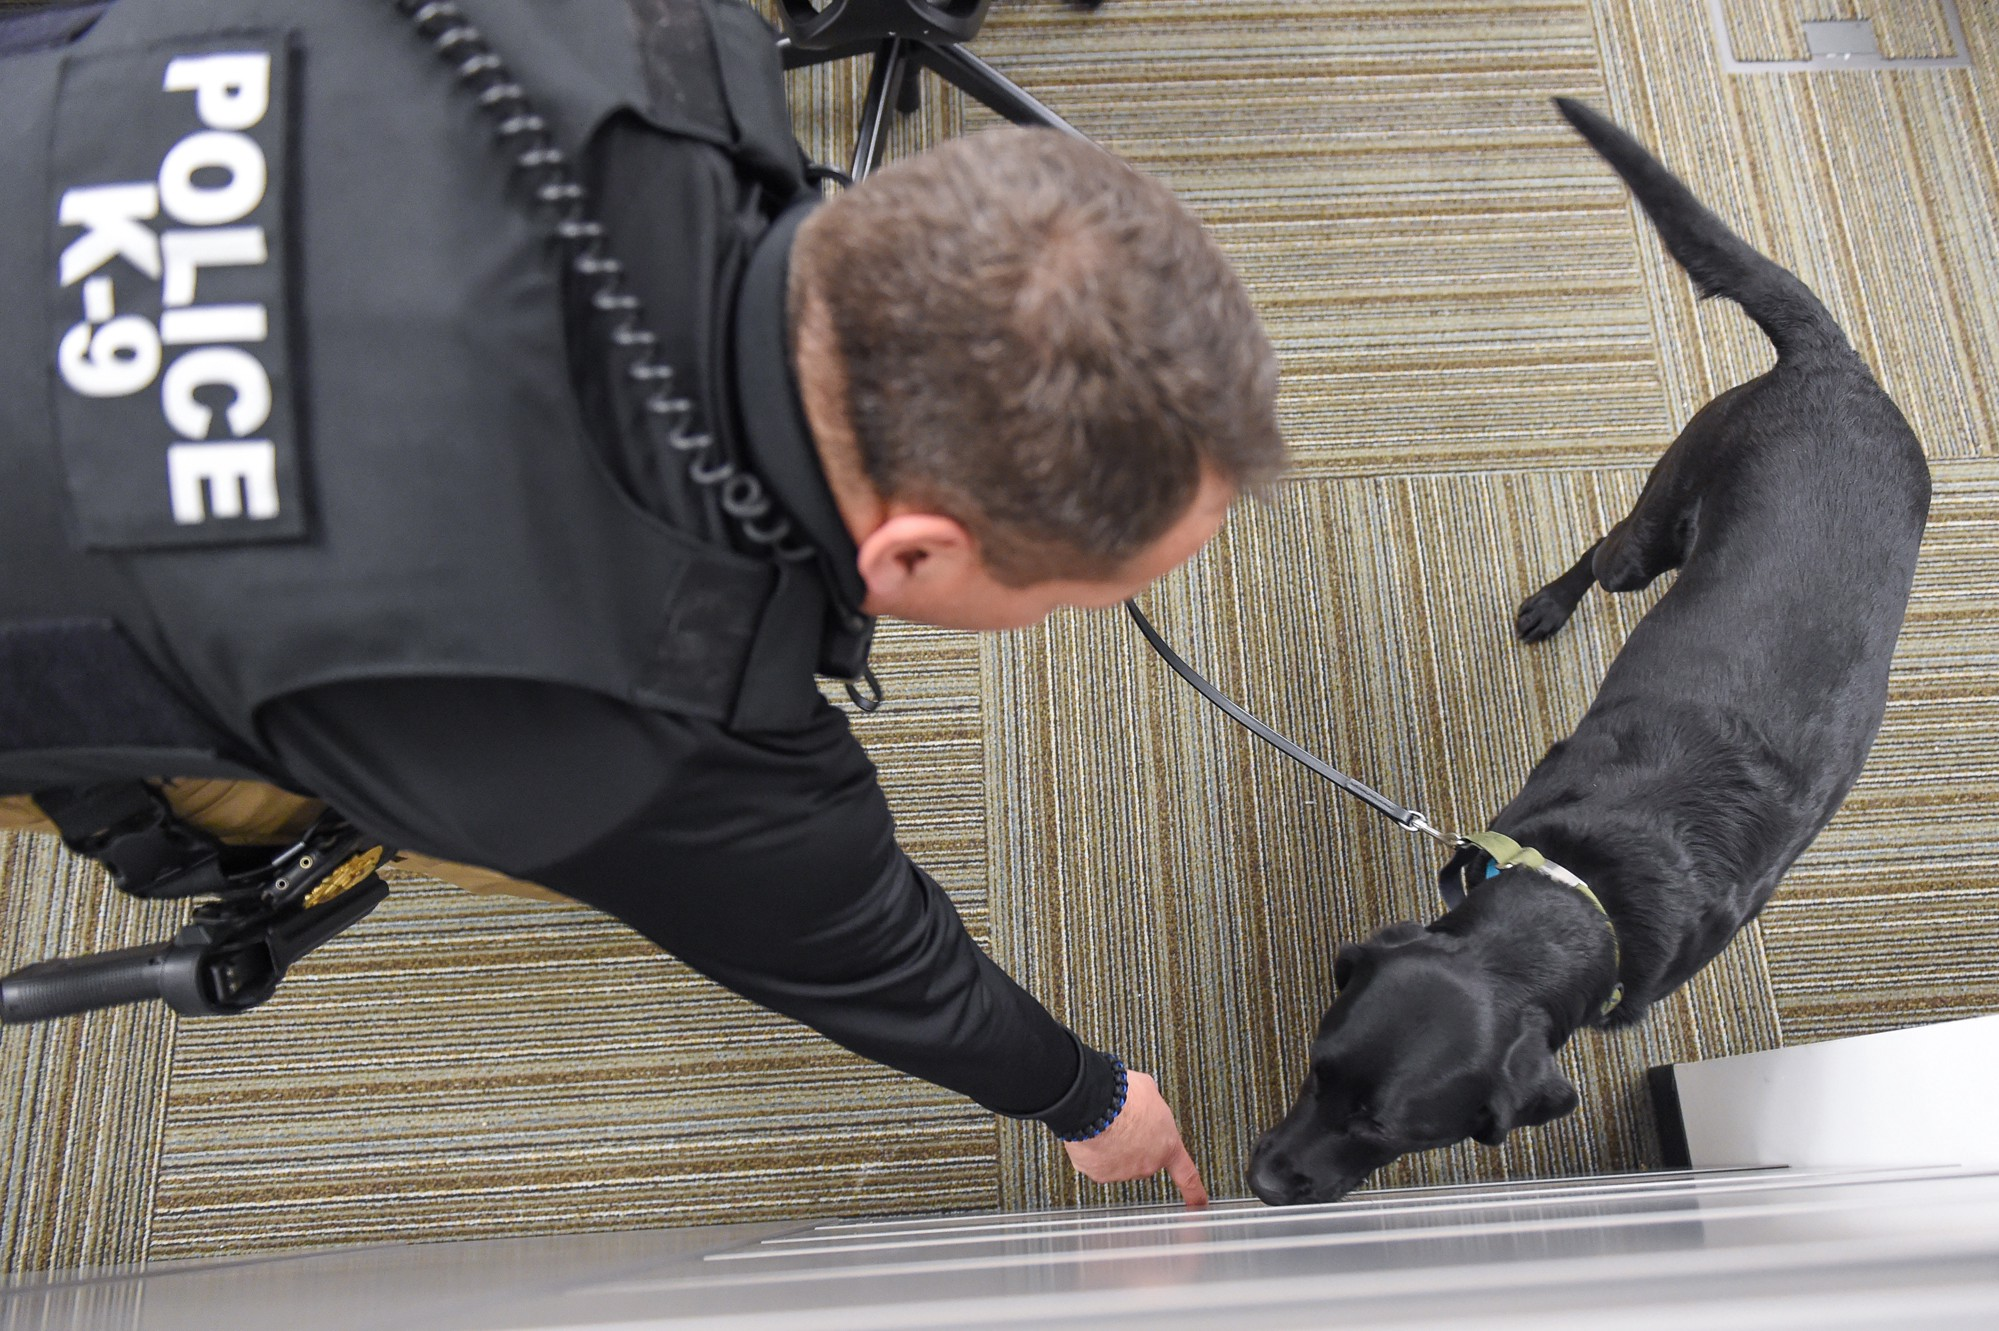 A Day In The Life Of Nga S Explosives Detection K 9 Teams